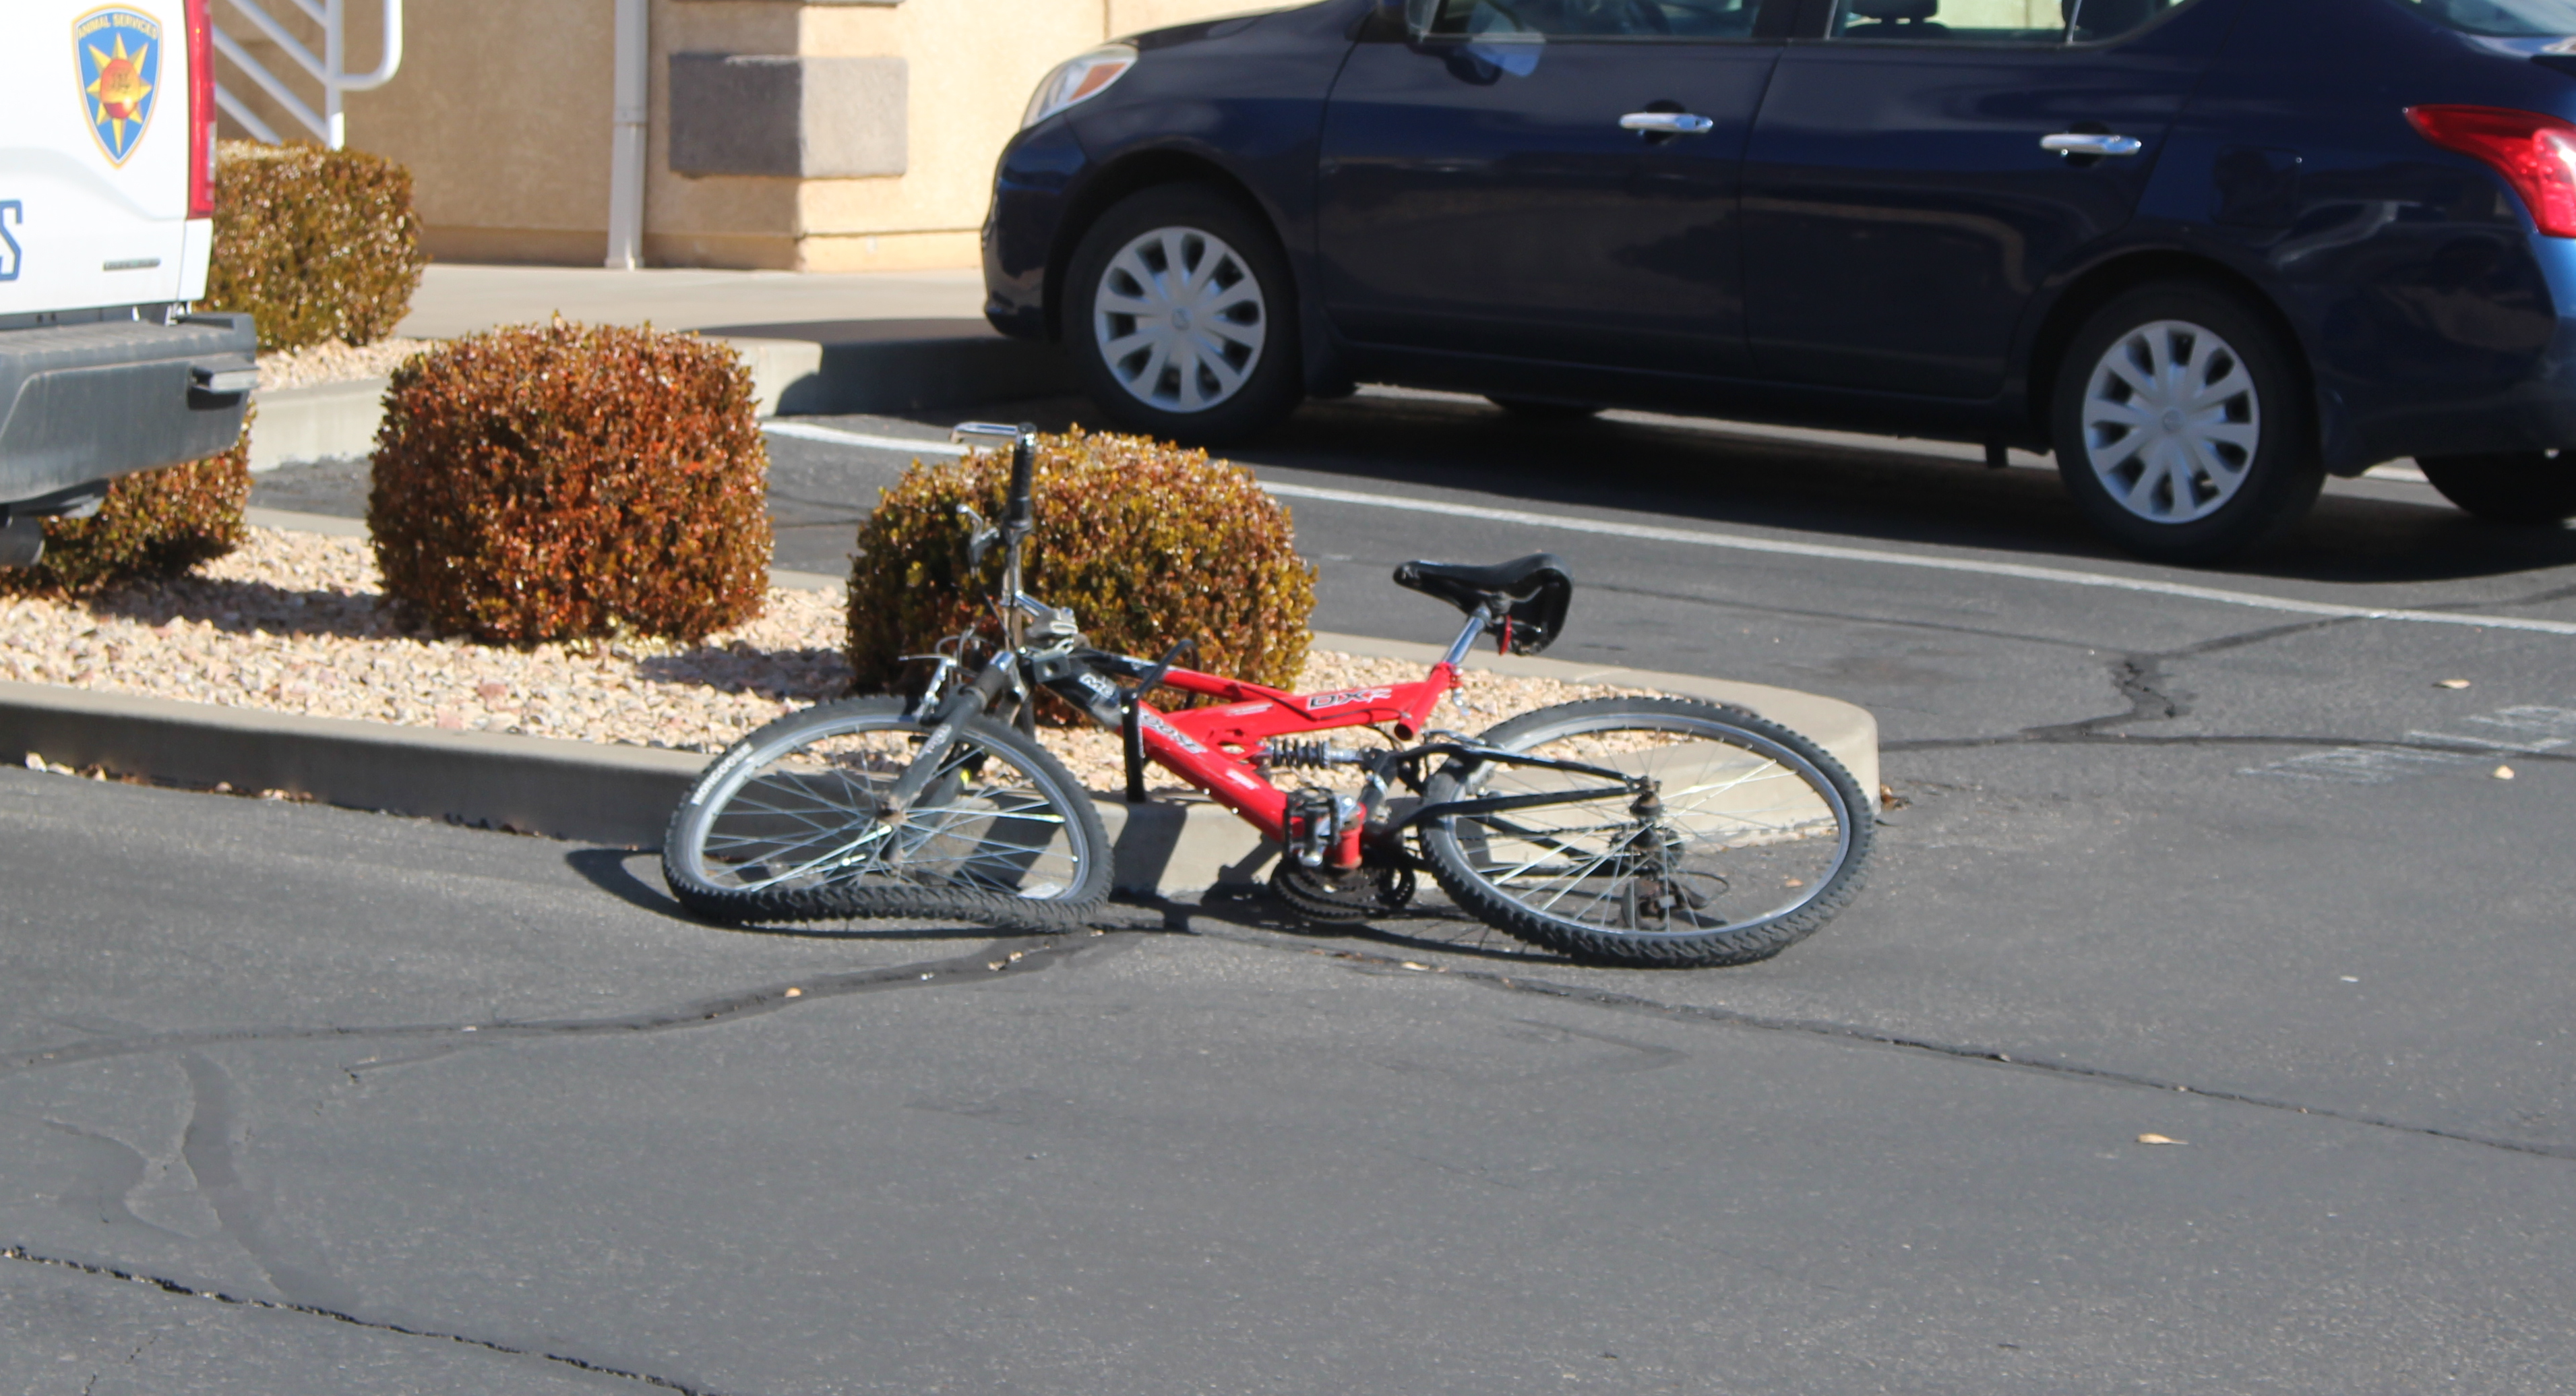 A bicycle sits in the parking lot with its wheel damaged after a collision Wednesday on 100 South. St. George, Utah, Jan. 11, 2017   Photo by Ric Wayman, St. George News